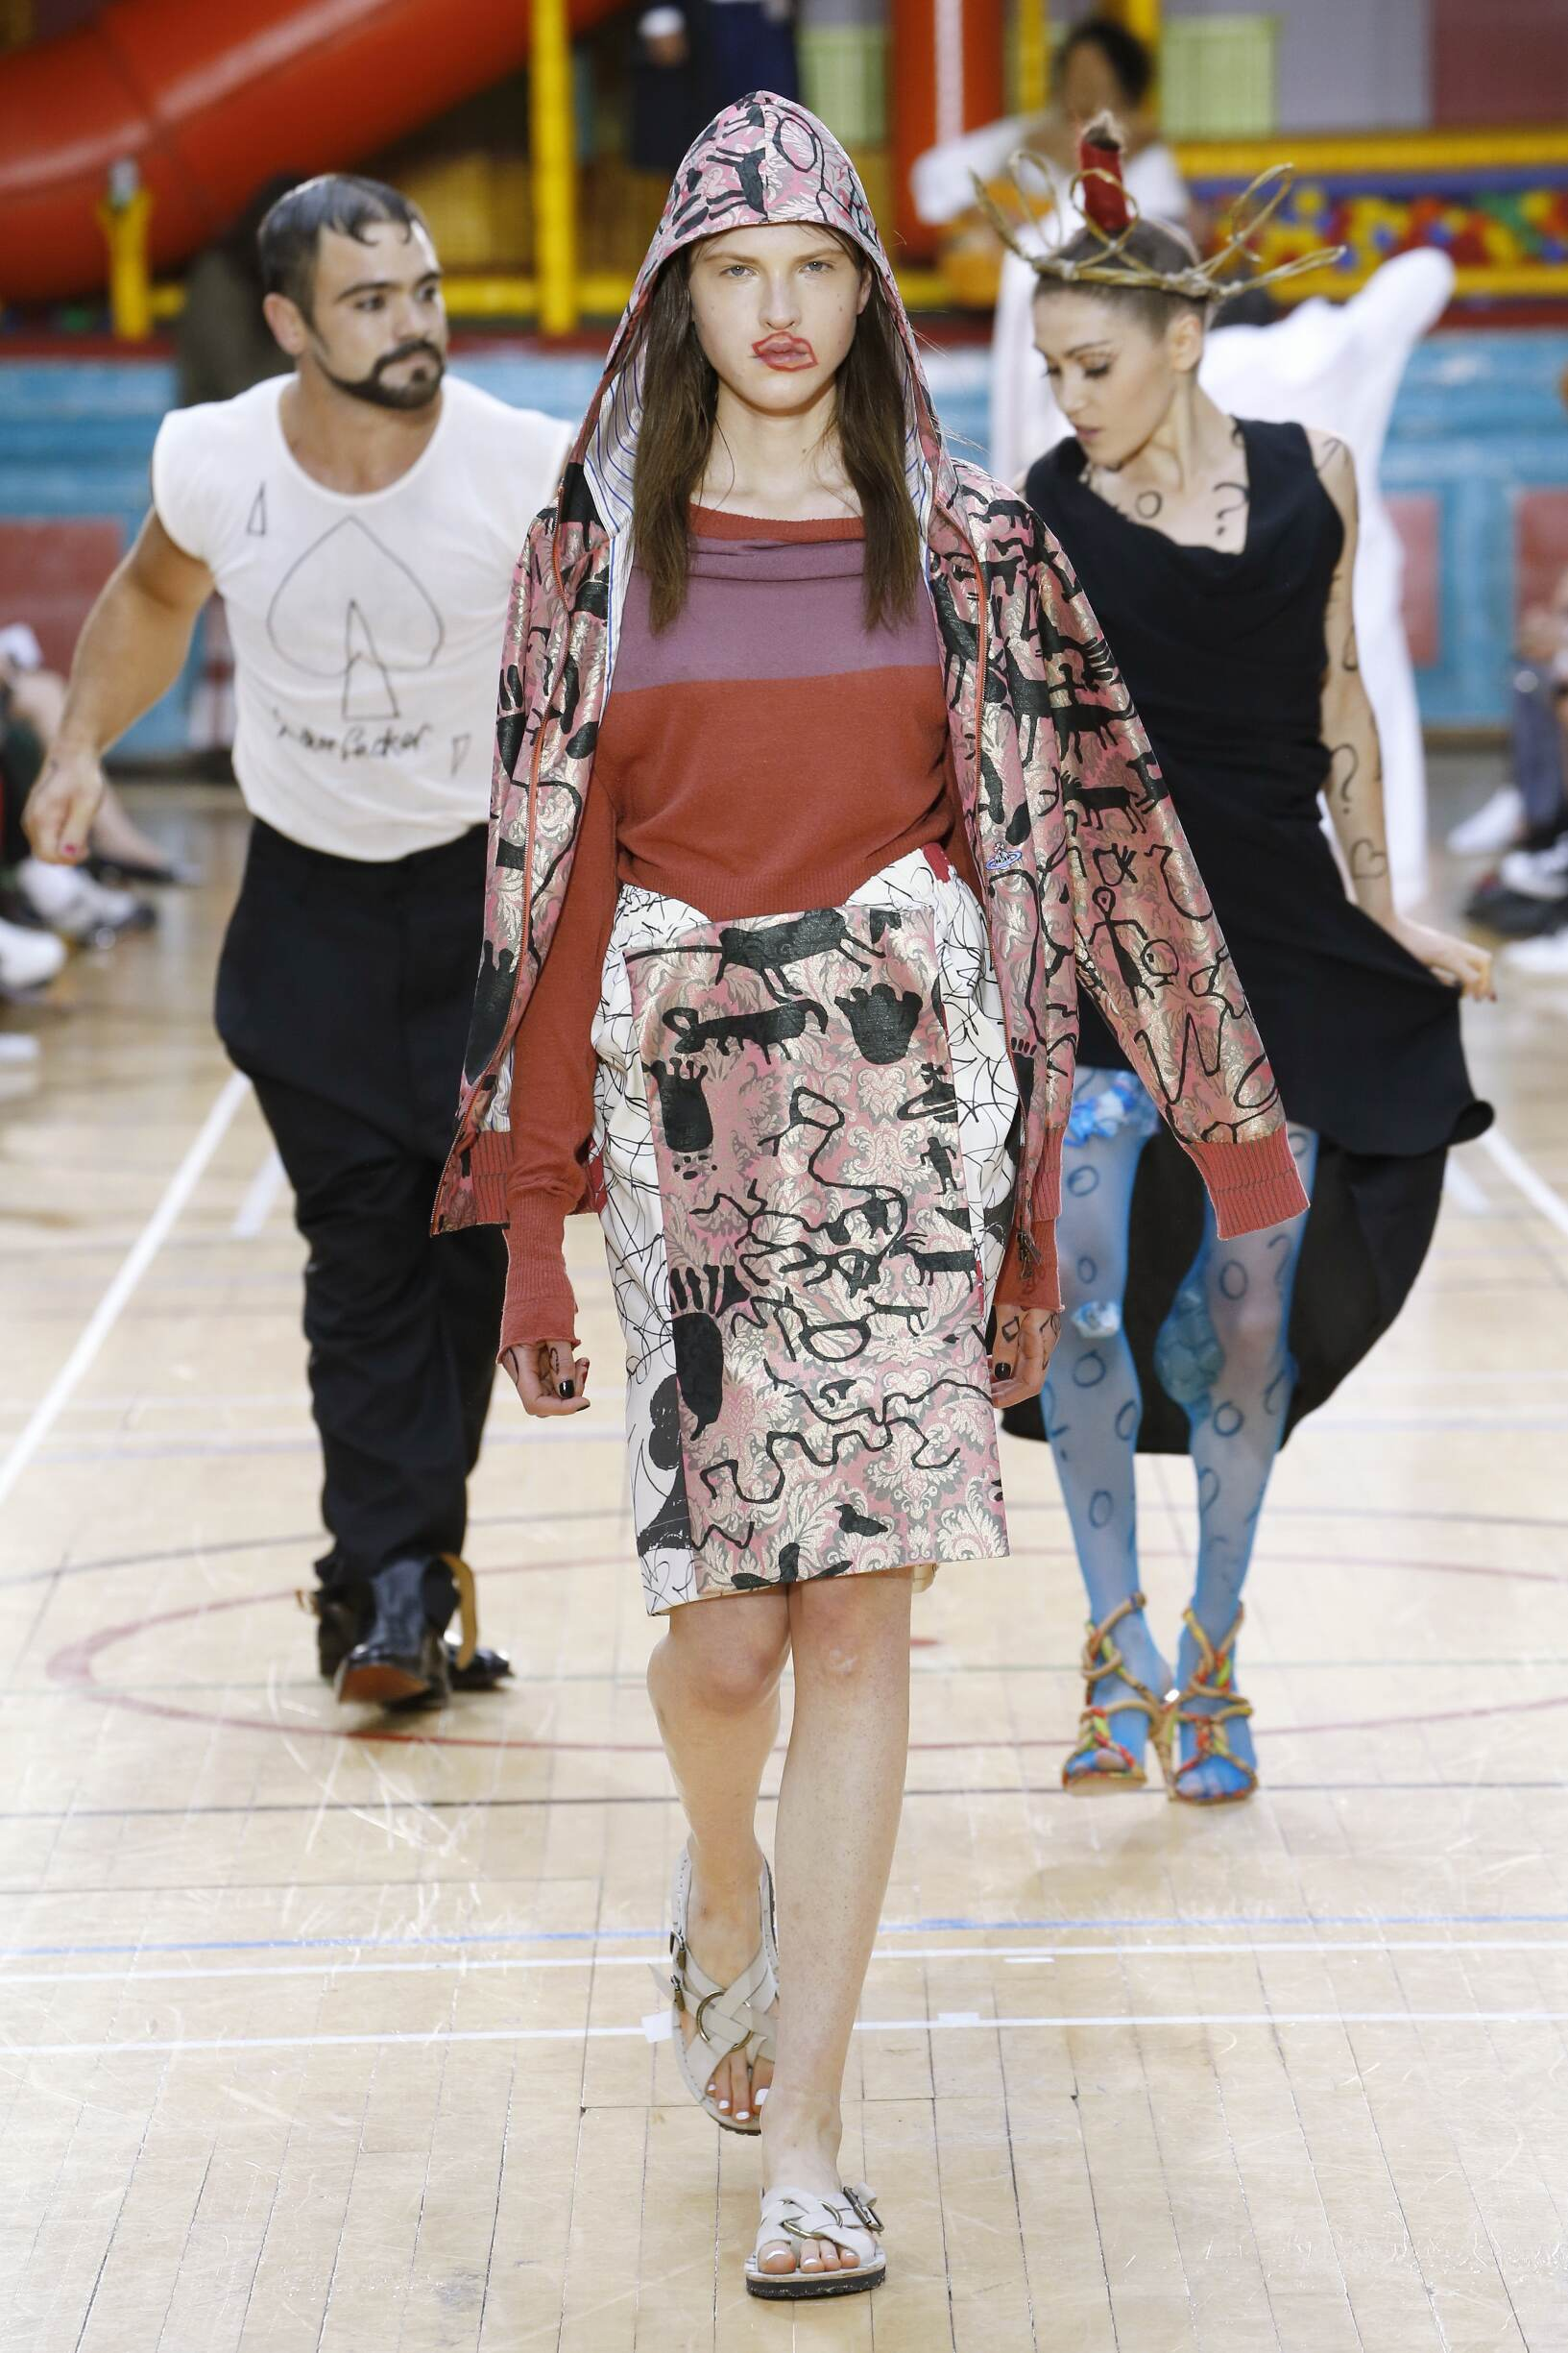 Vivienne Westwood Womenswear Collection Trends Summer